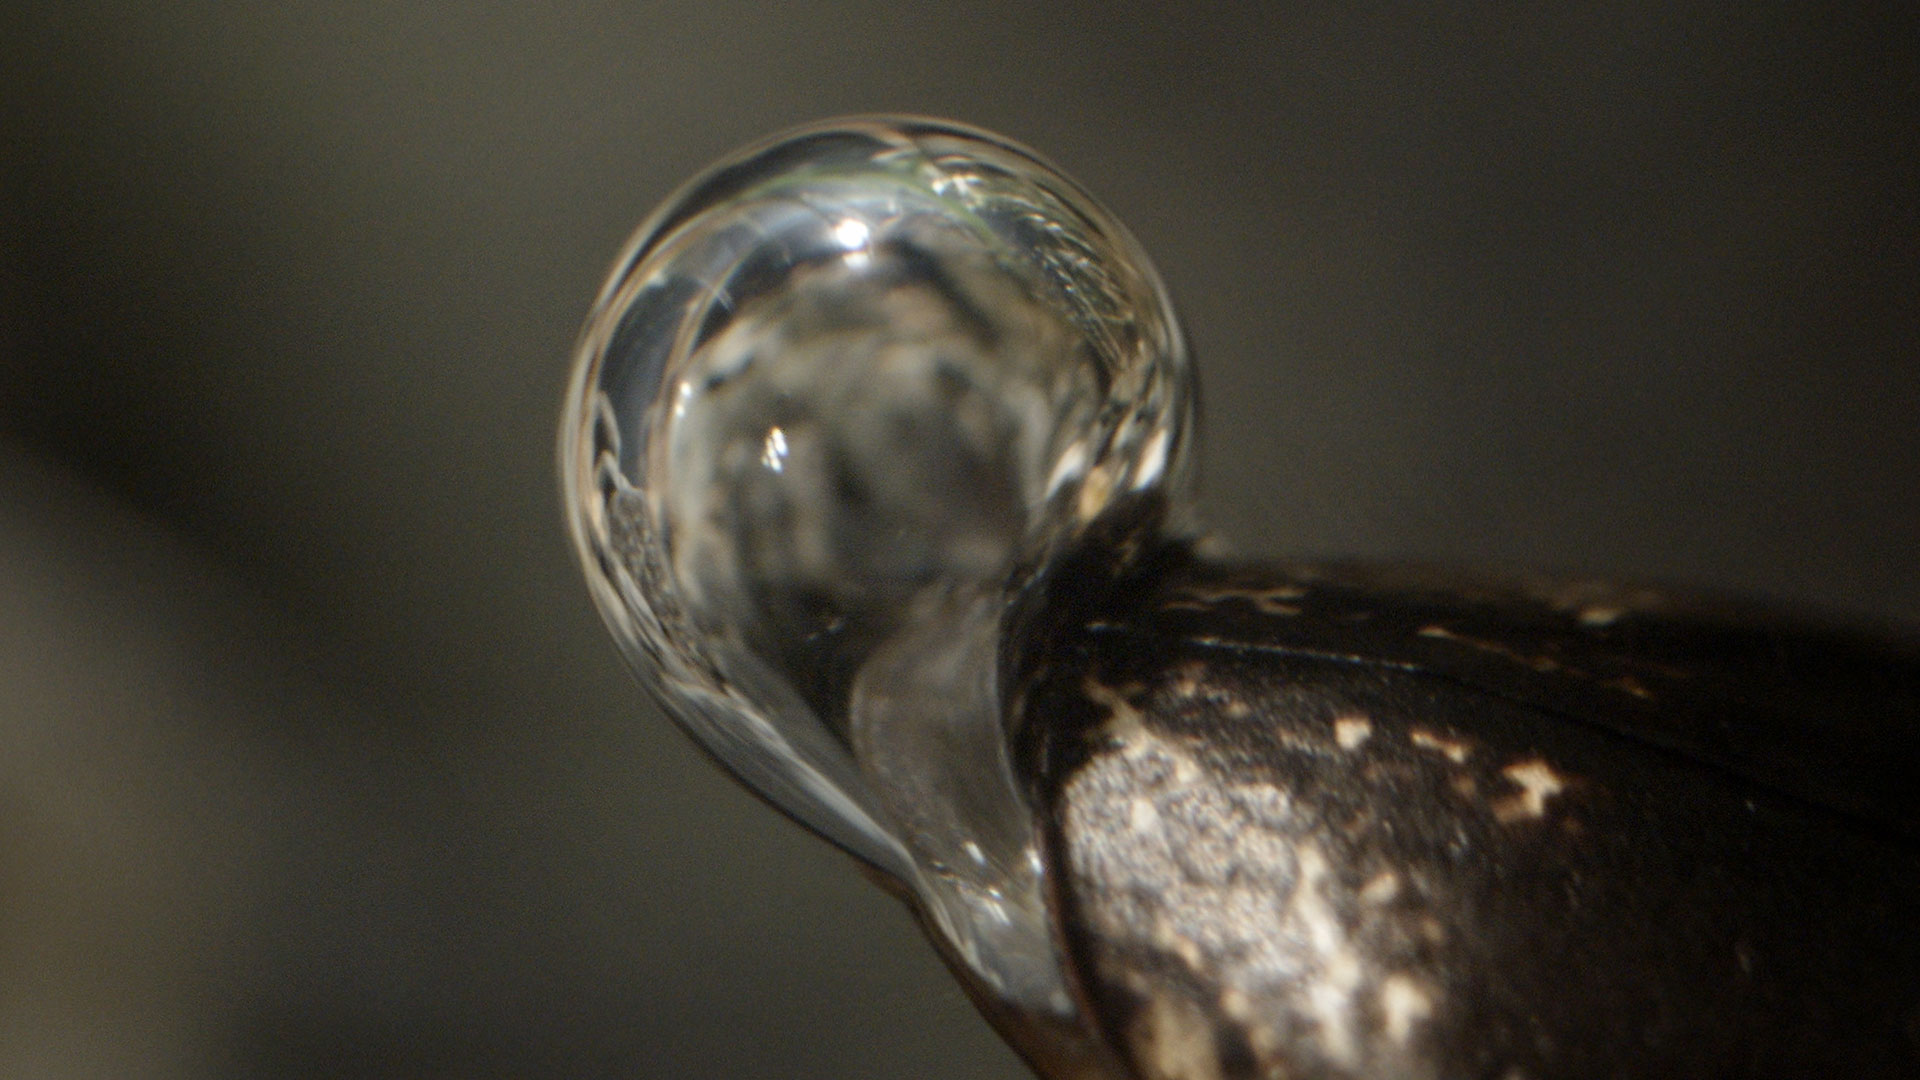 The beetle's bubble can partially replenish with oxygen from the surrounding water.